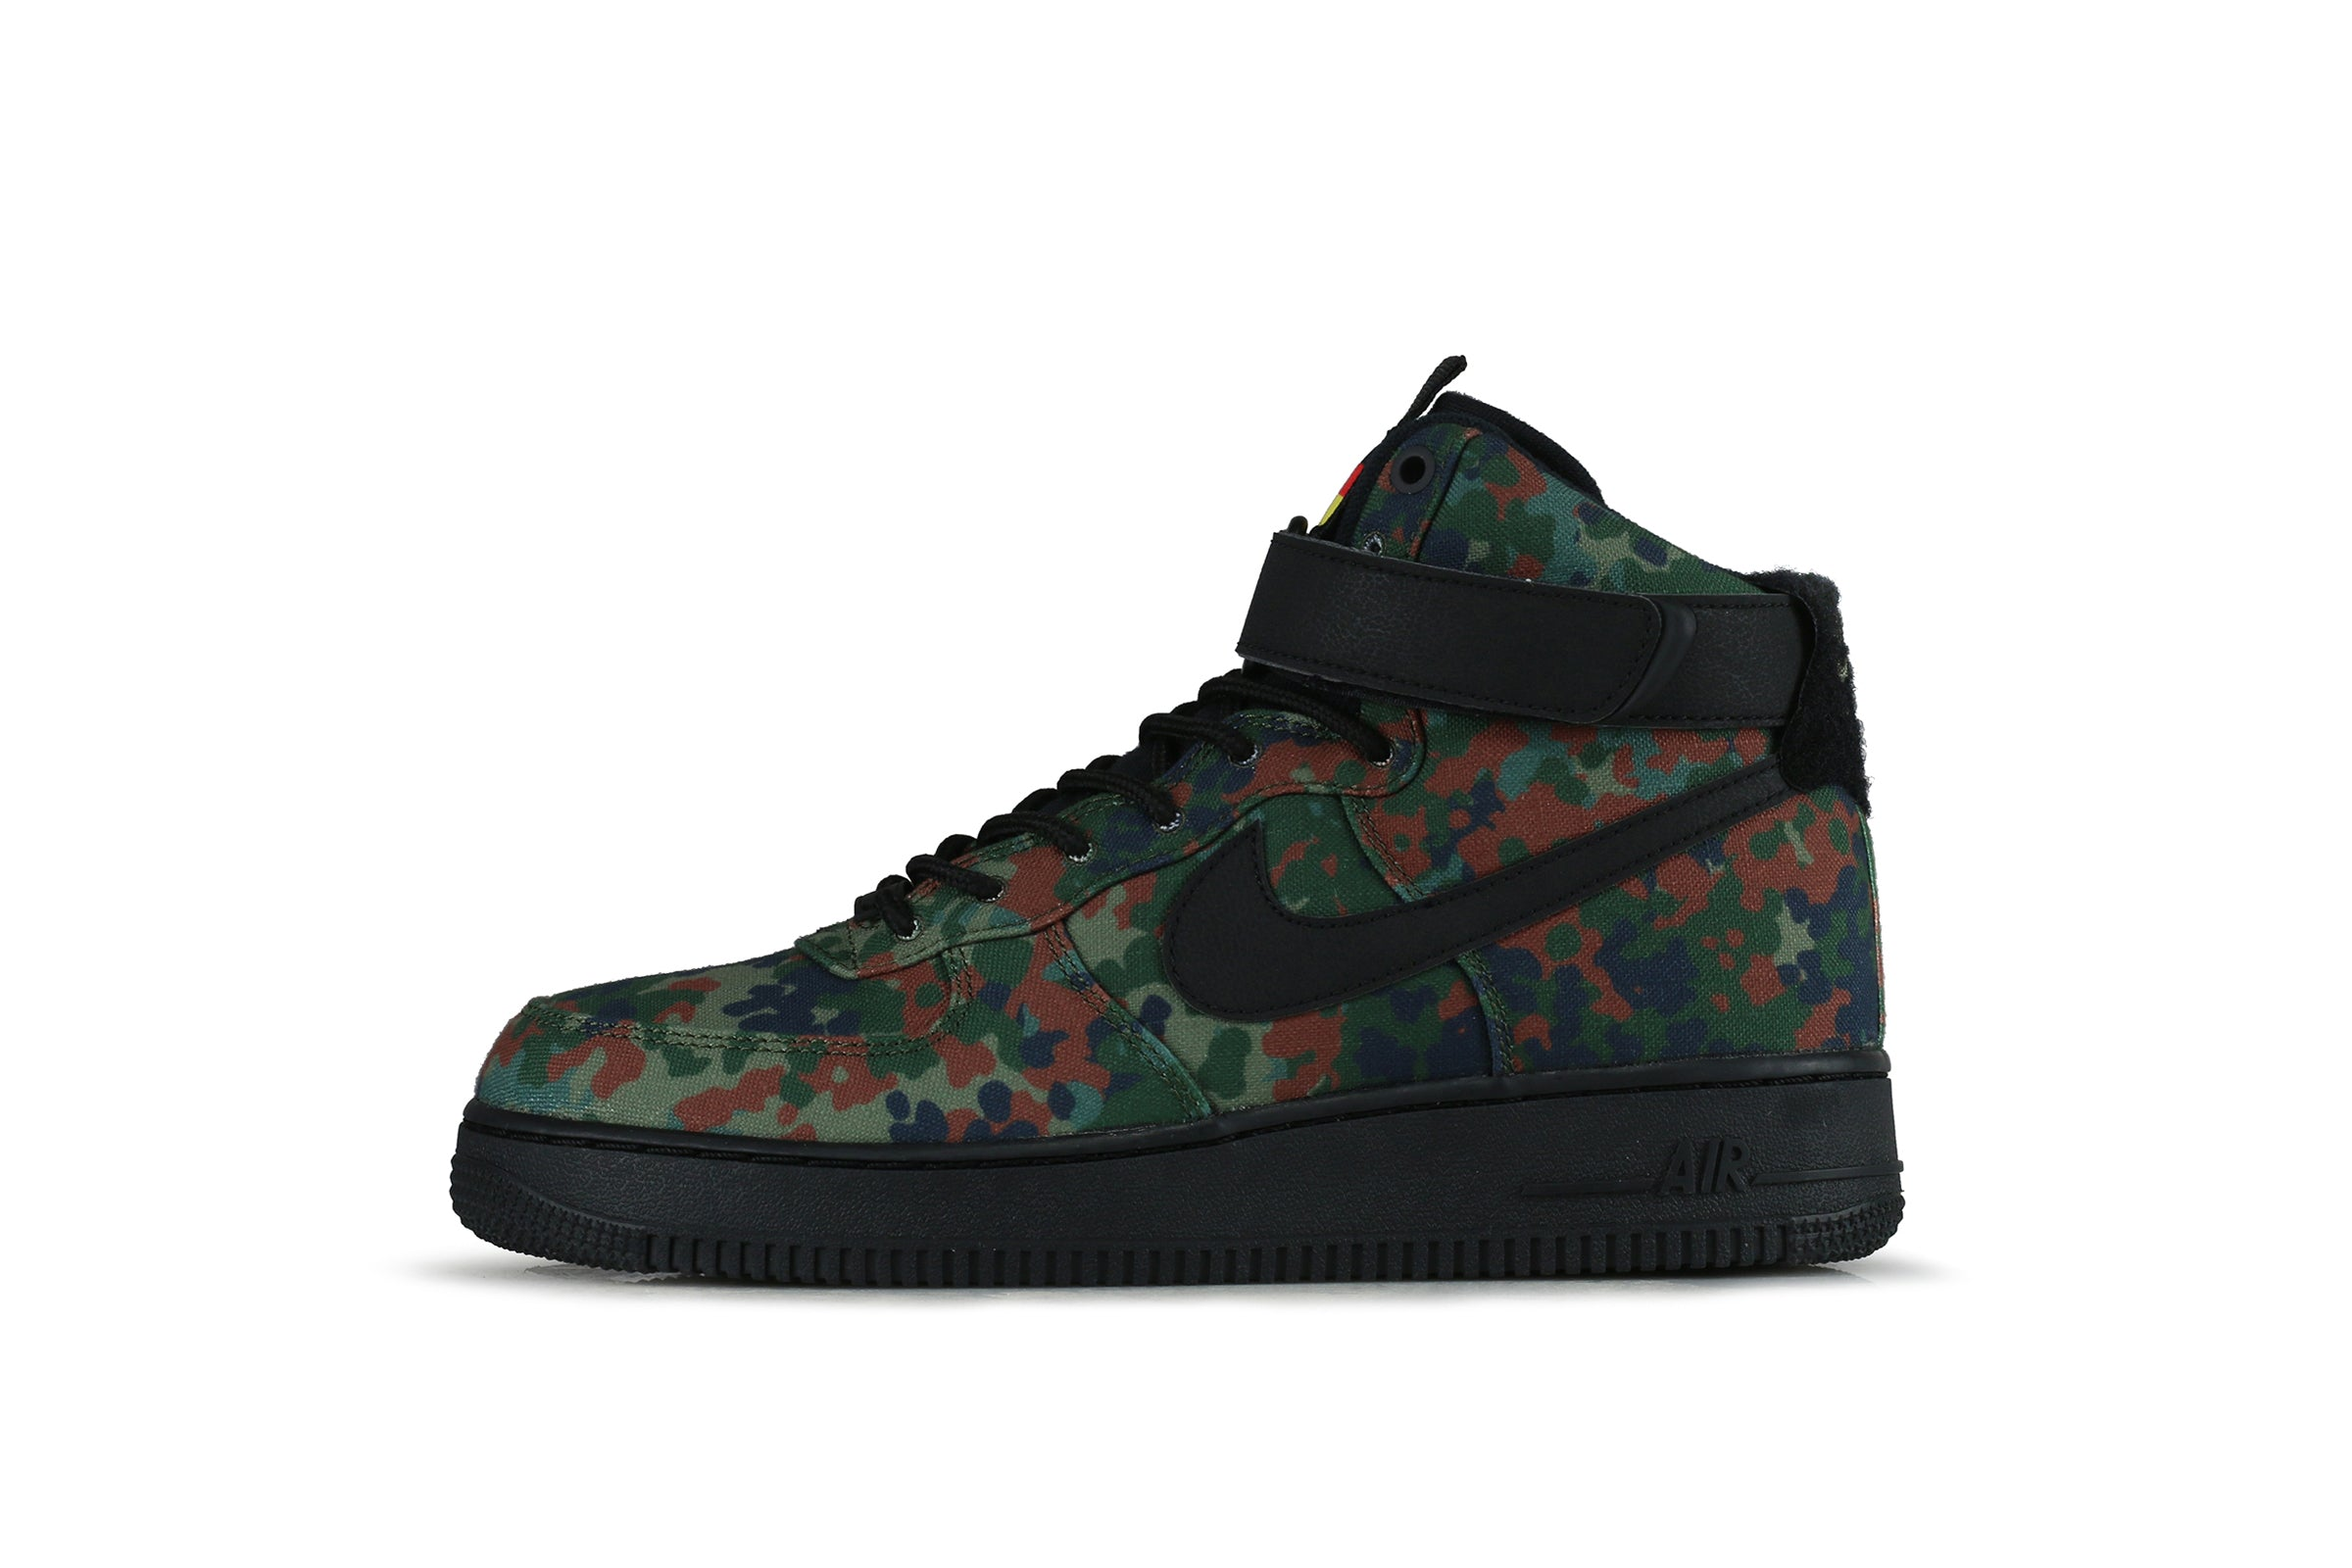 Nike Air Force 1 High \u002707 LV8 WE \